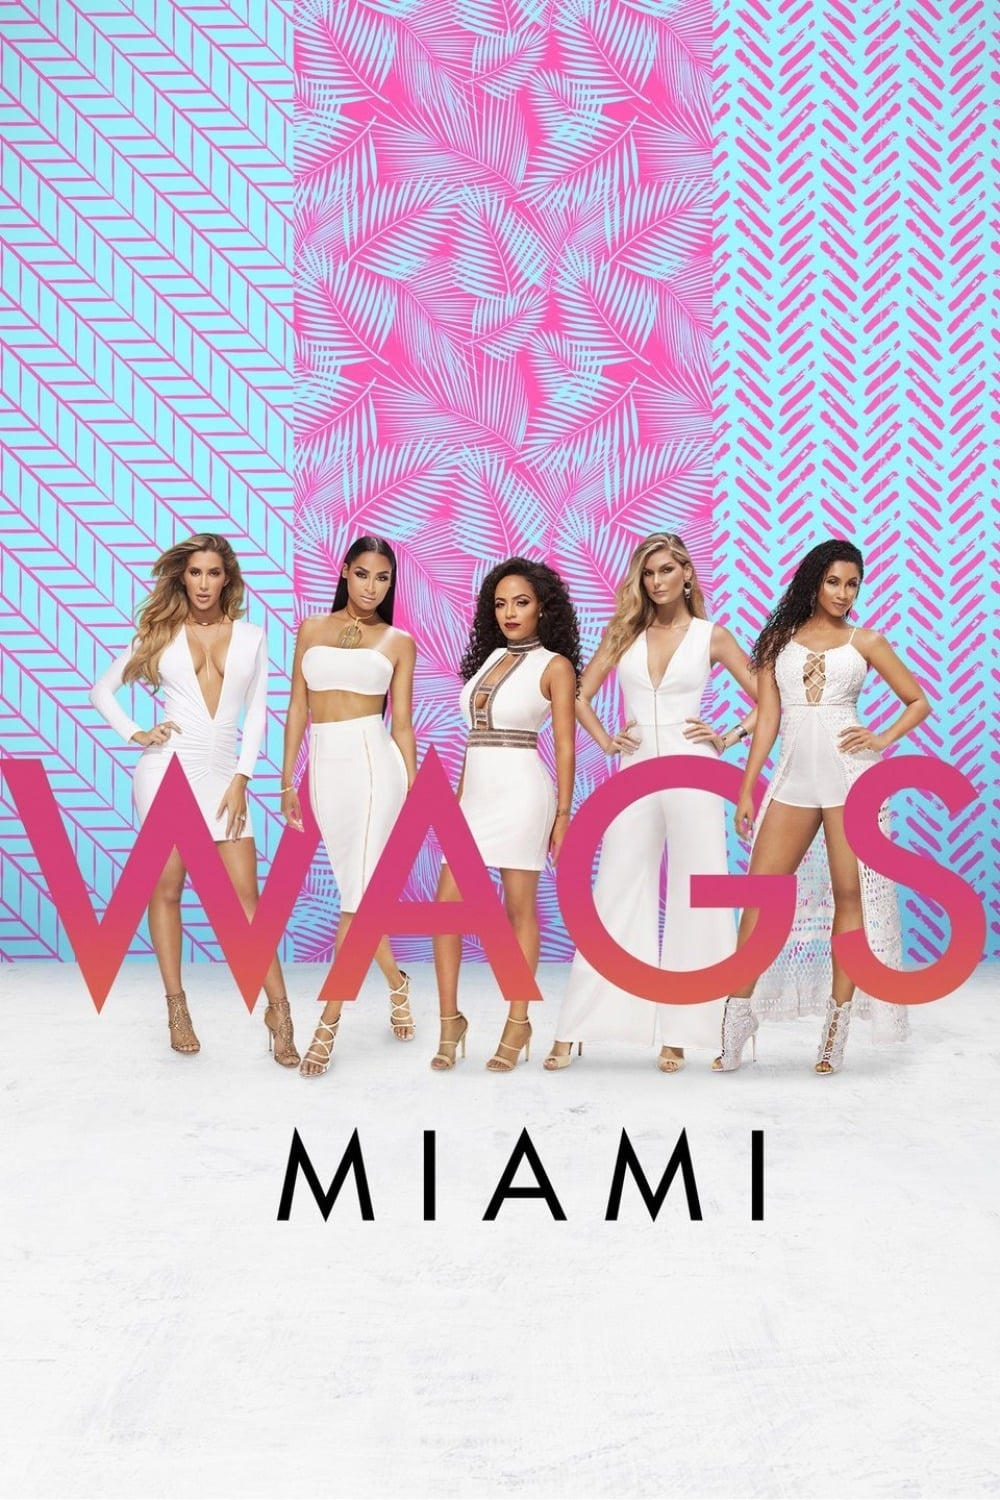 WAGS Miami series tv complet